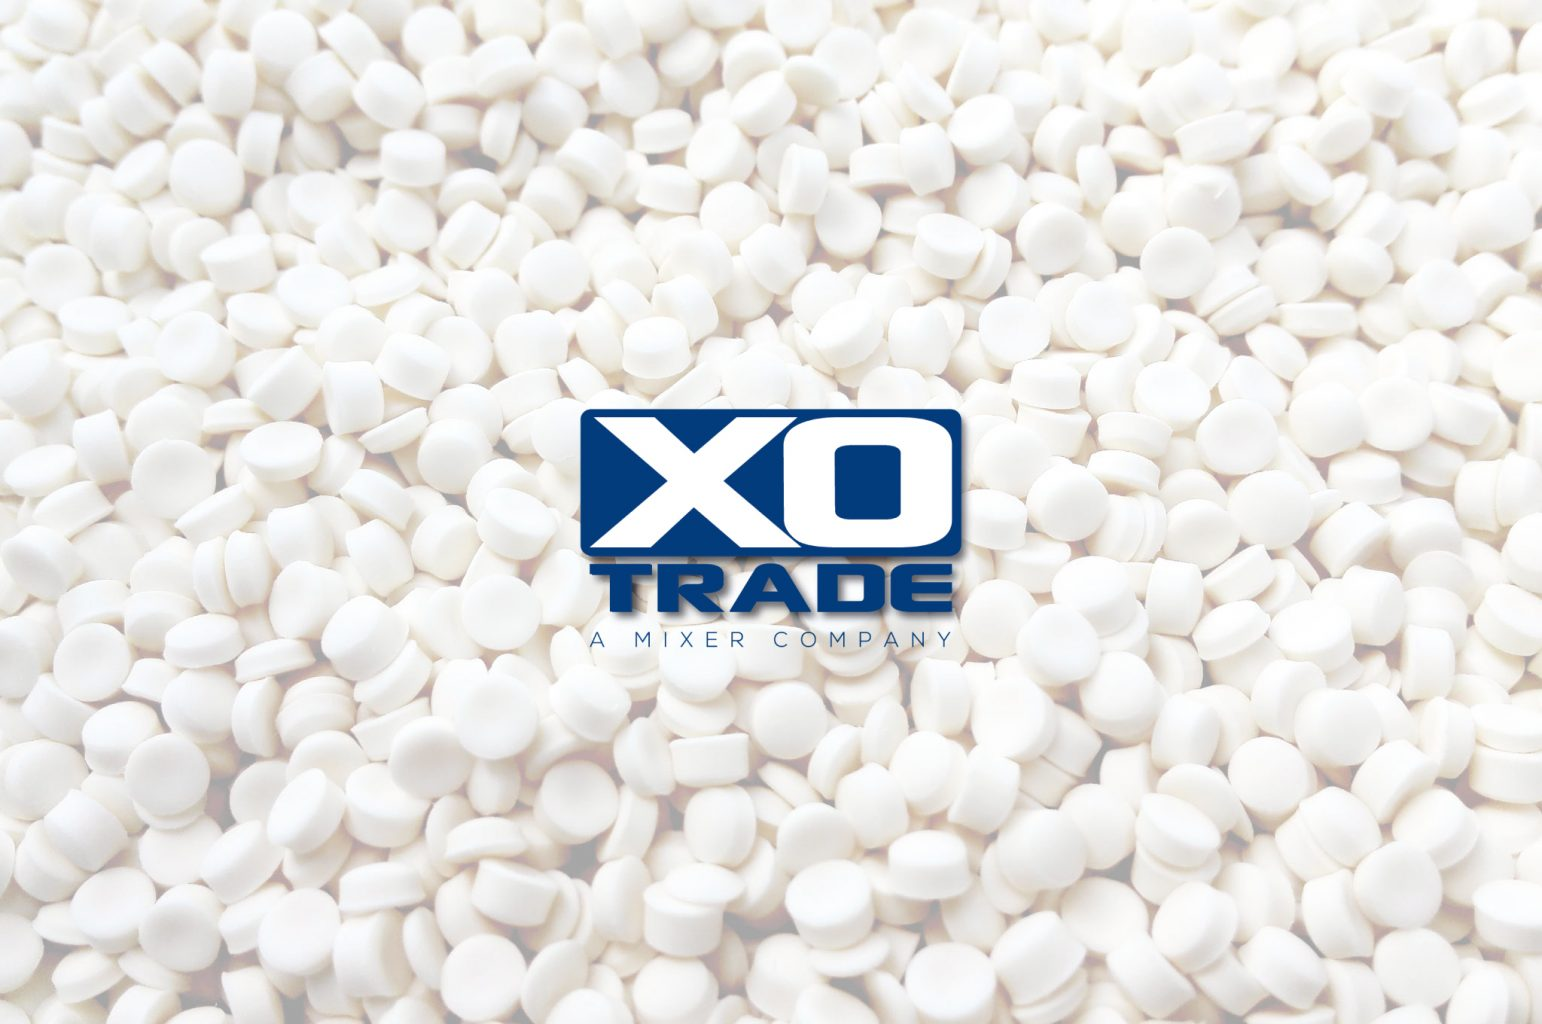 XO Trade, a new business unit for the US market